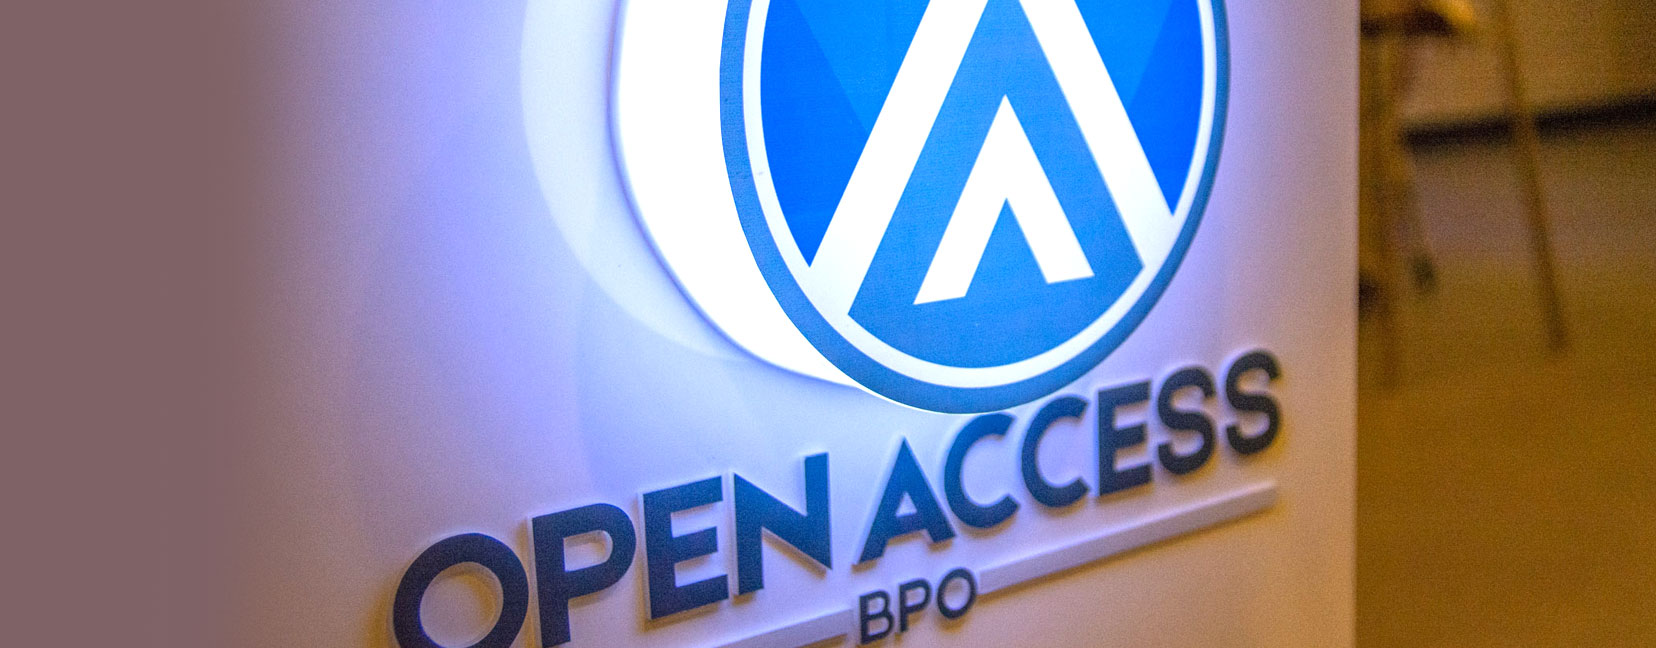 Open Access BPO launches new Makati office